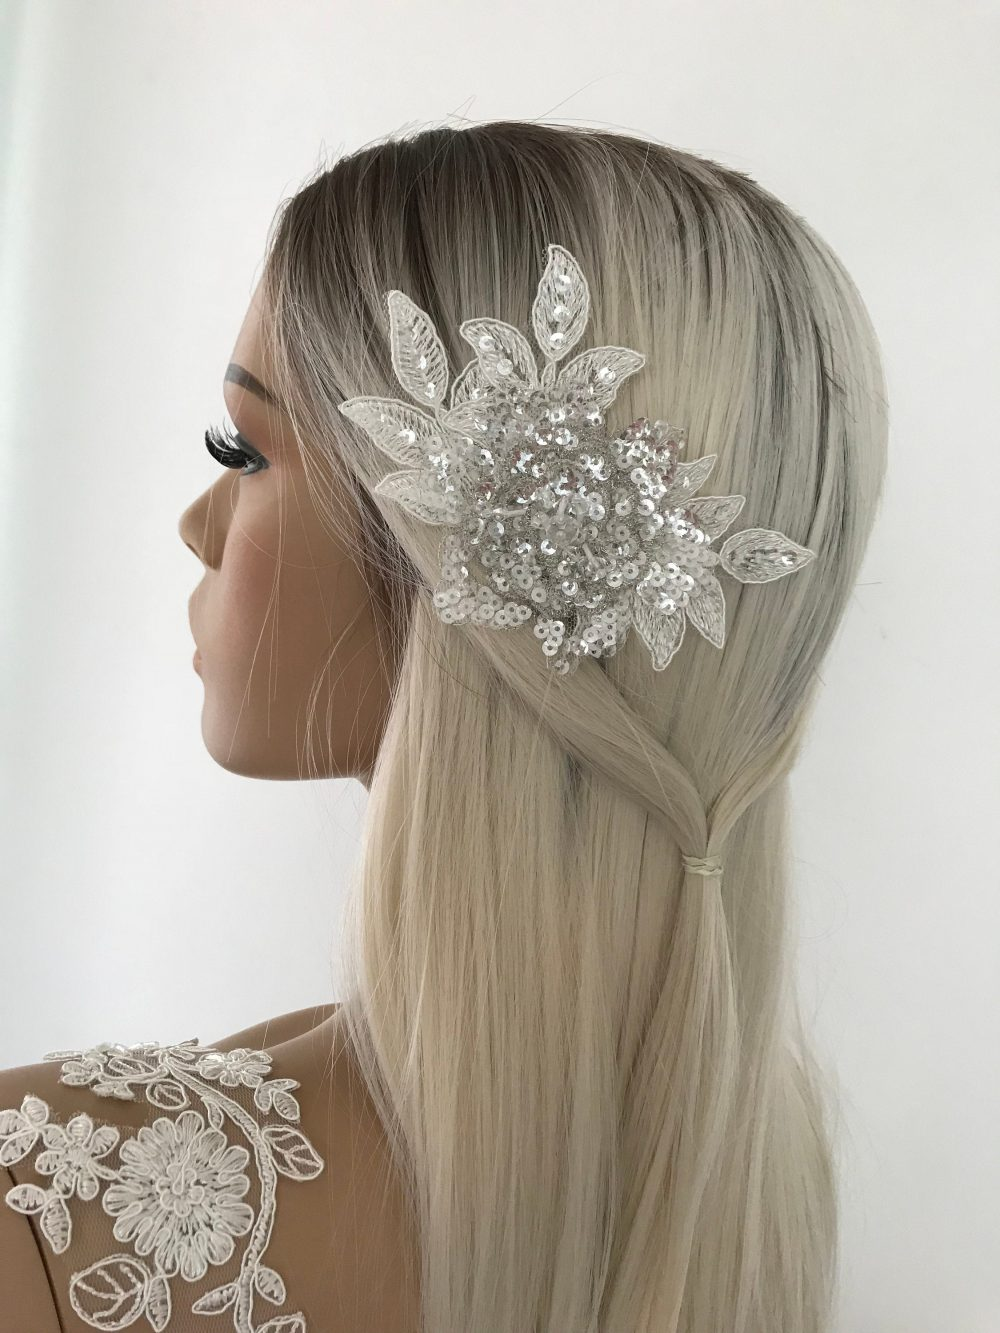 Hair Accessories Bridal Lace Comb, Sequin Crystal Beaded Lace Comb, Accessory, Hairpiece, Wedding Accessories